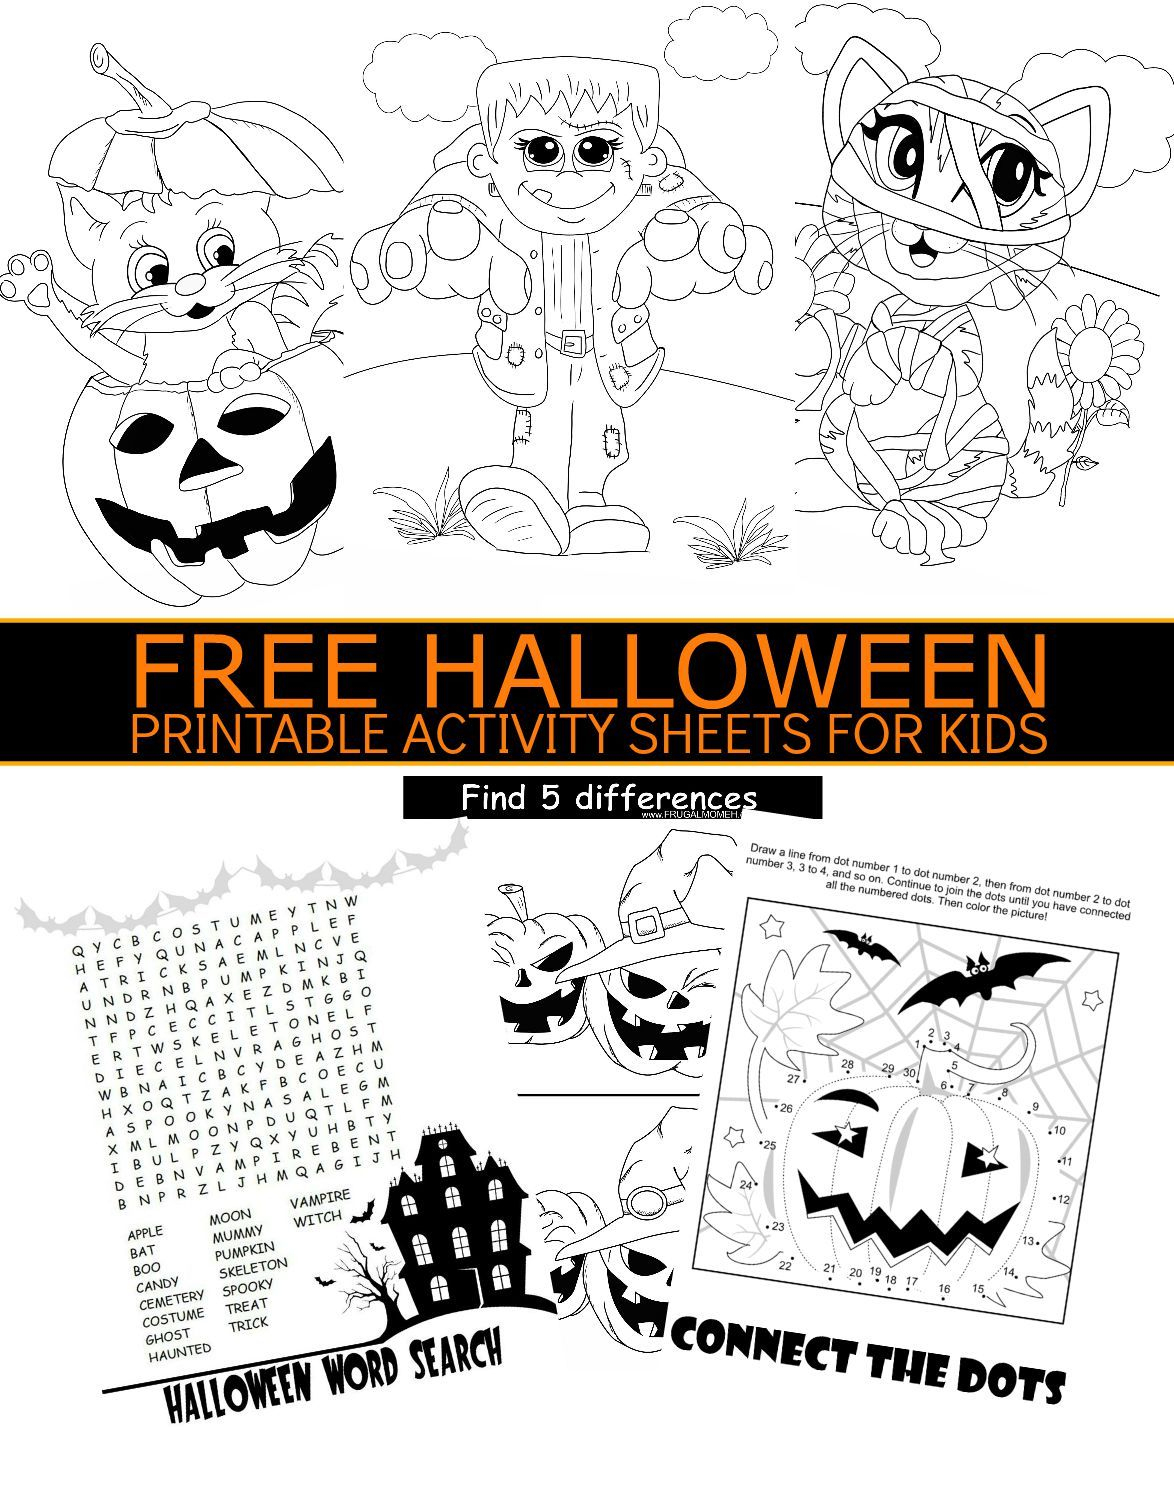 Free Halloween Printable Activity Sheets For Kids | Holidays - Free Printable Halloween Games For Kids